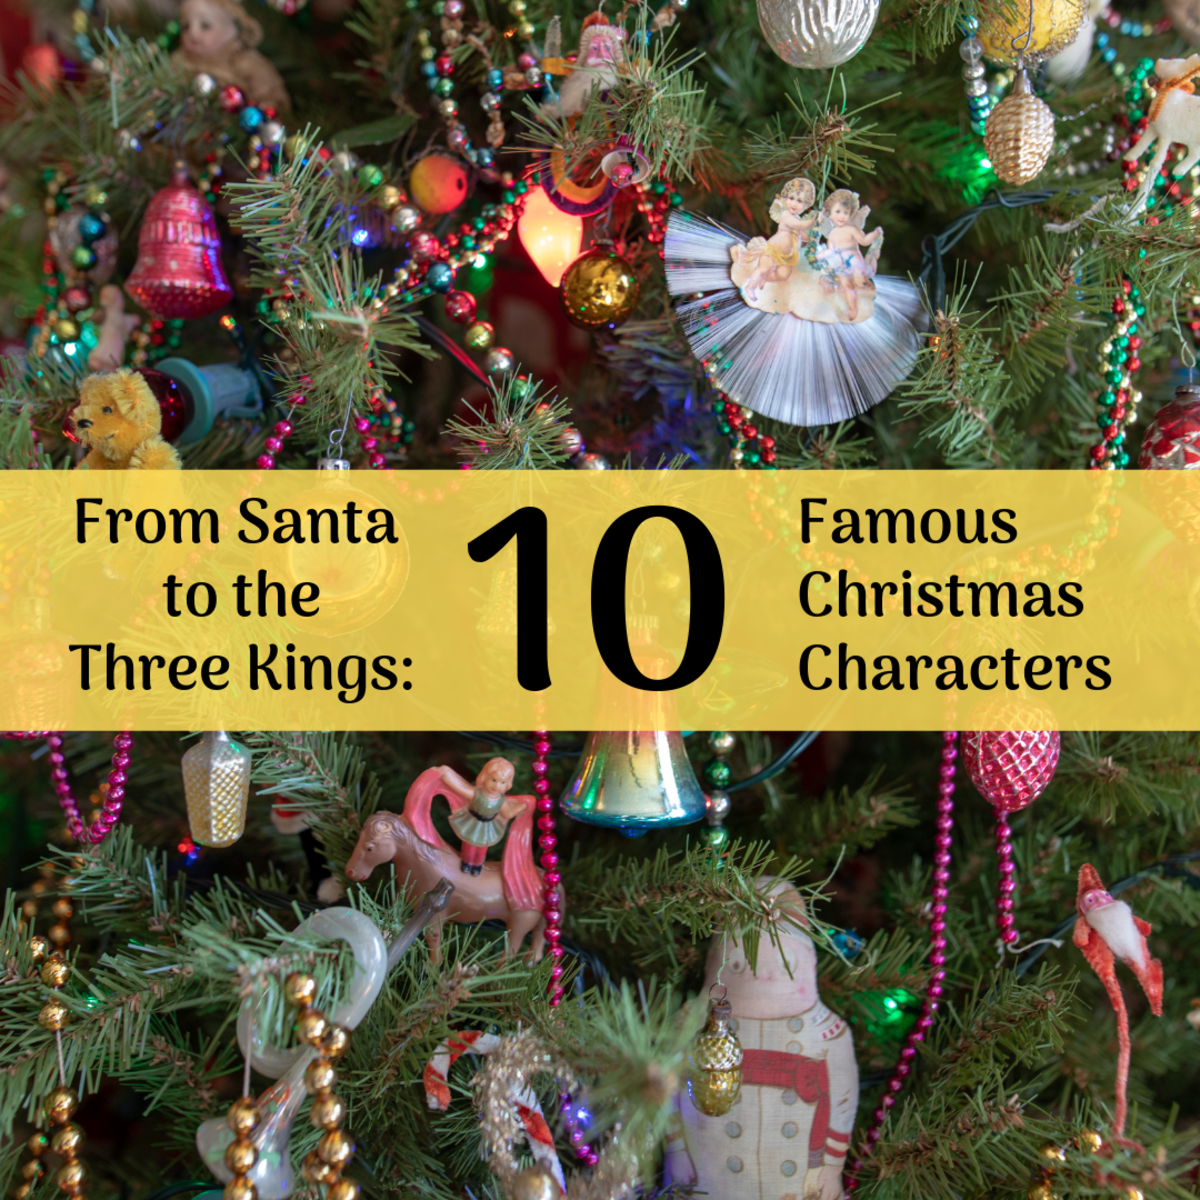 10 Famous Christmas Characters: Religious and Popular Figures